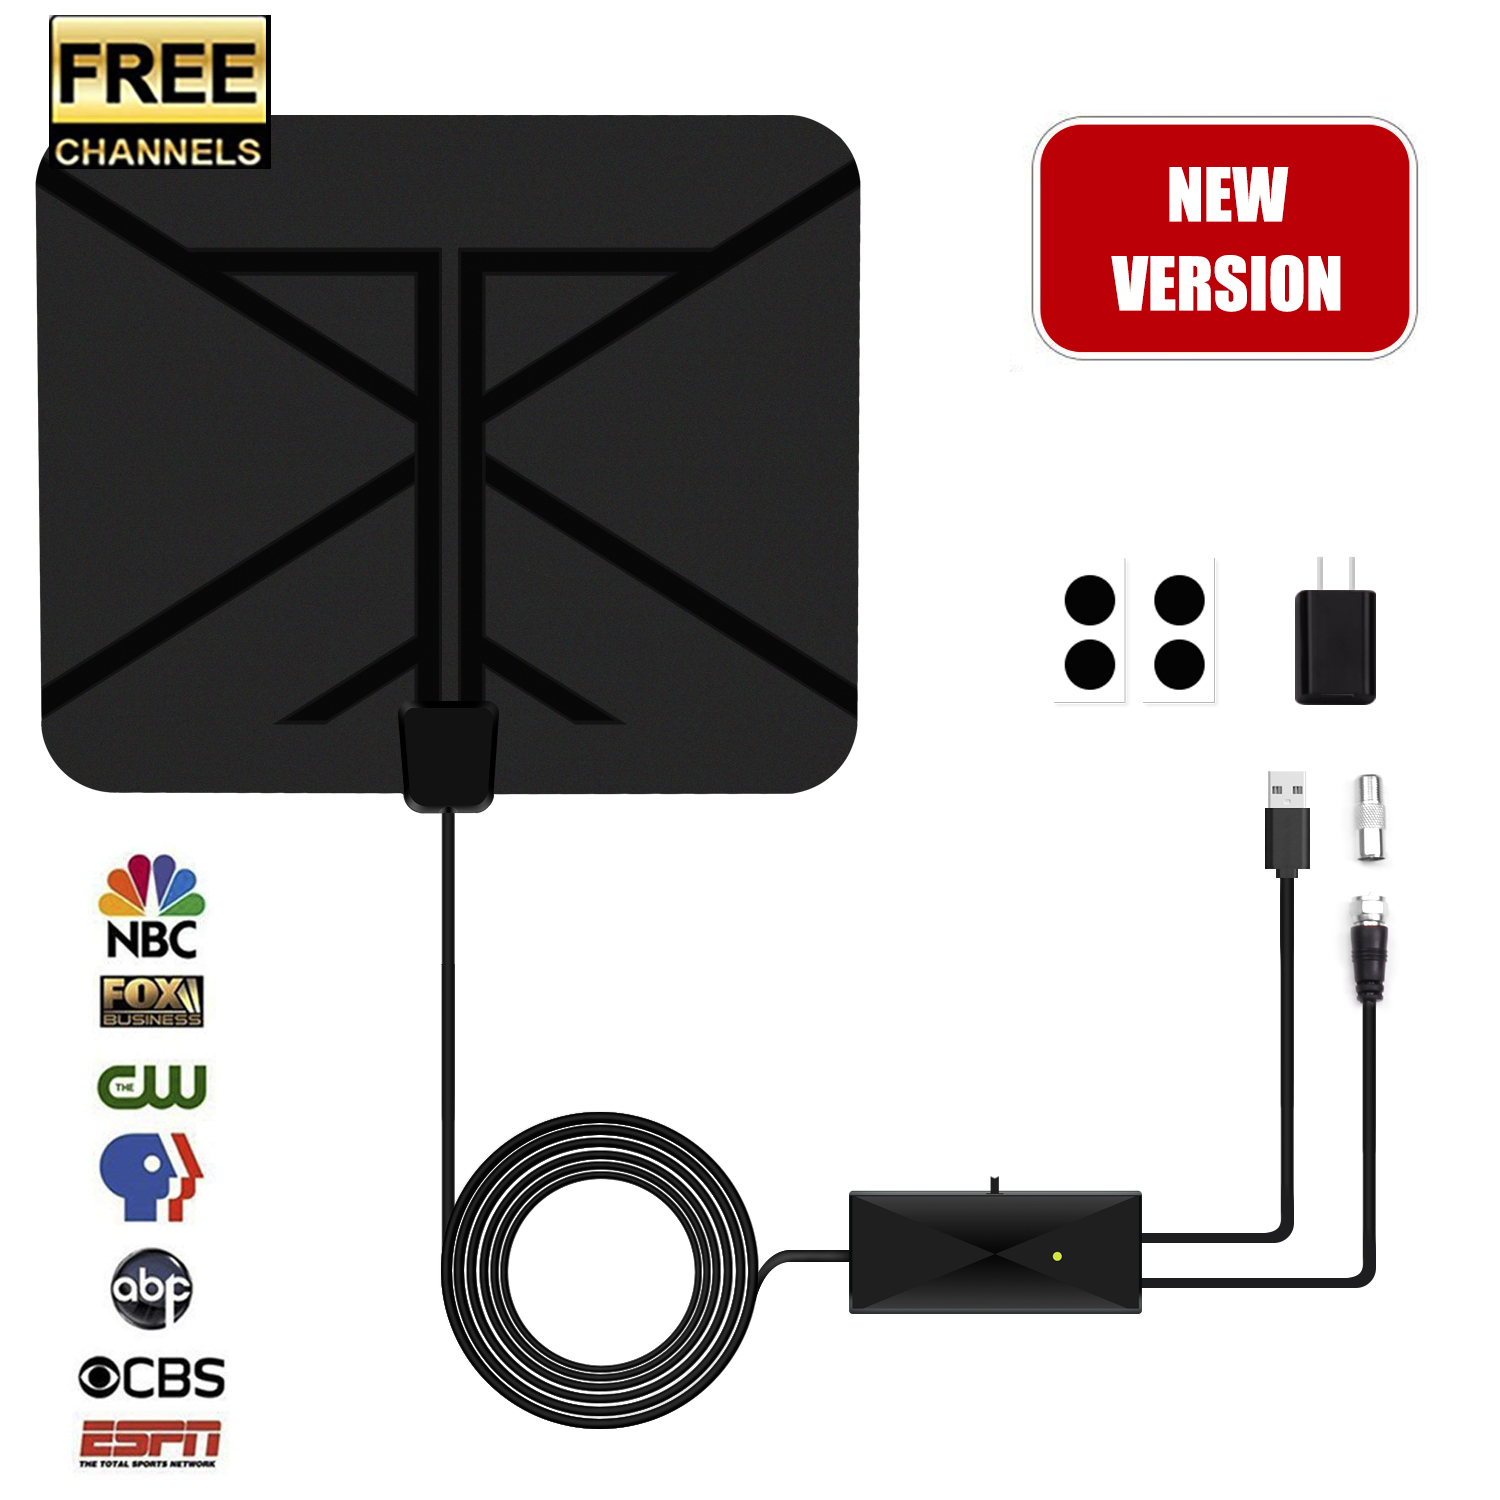 [2019 Latest]TV Antenna, HDTV Indoor Digital Amplified Antenna 60 Miles Range with Switch Amplifier Signal Booster for Free Local Channels 4K HD 1080P VHF UHF All TV's - 16.5ft Coaxial Cable